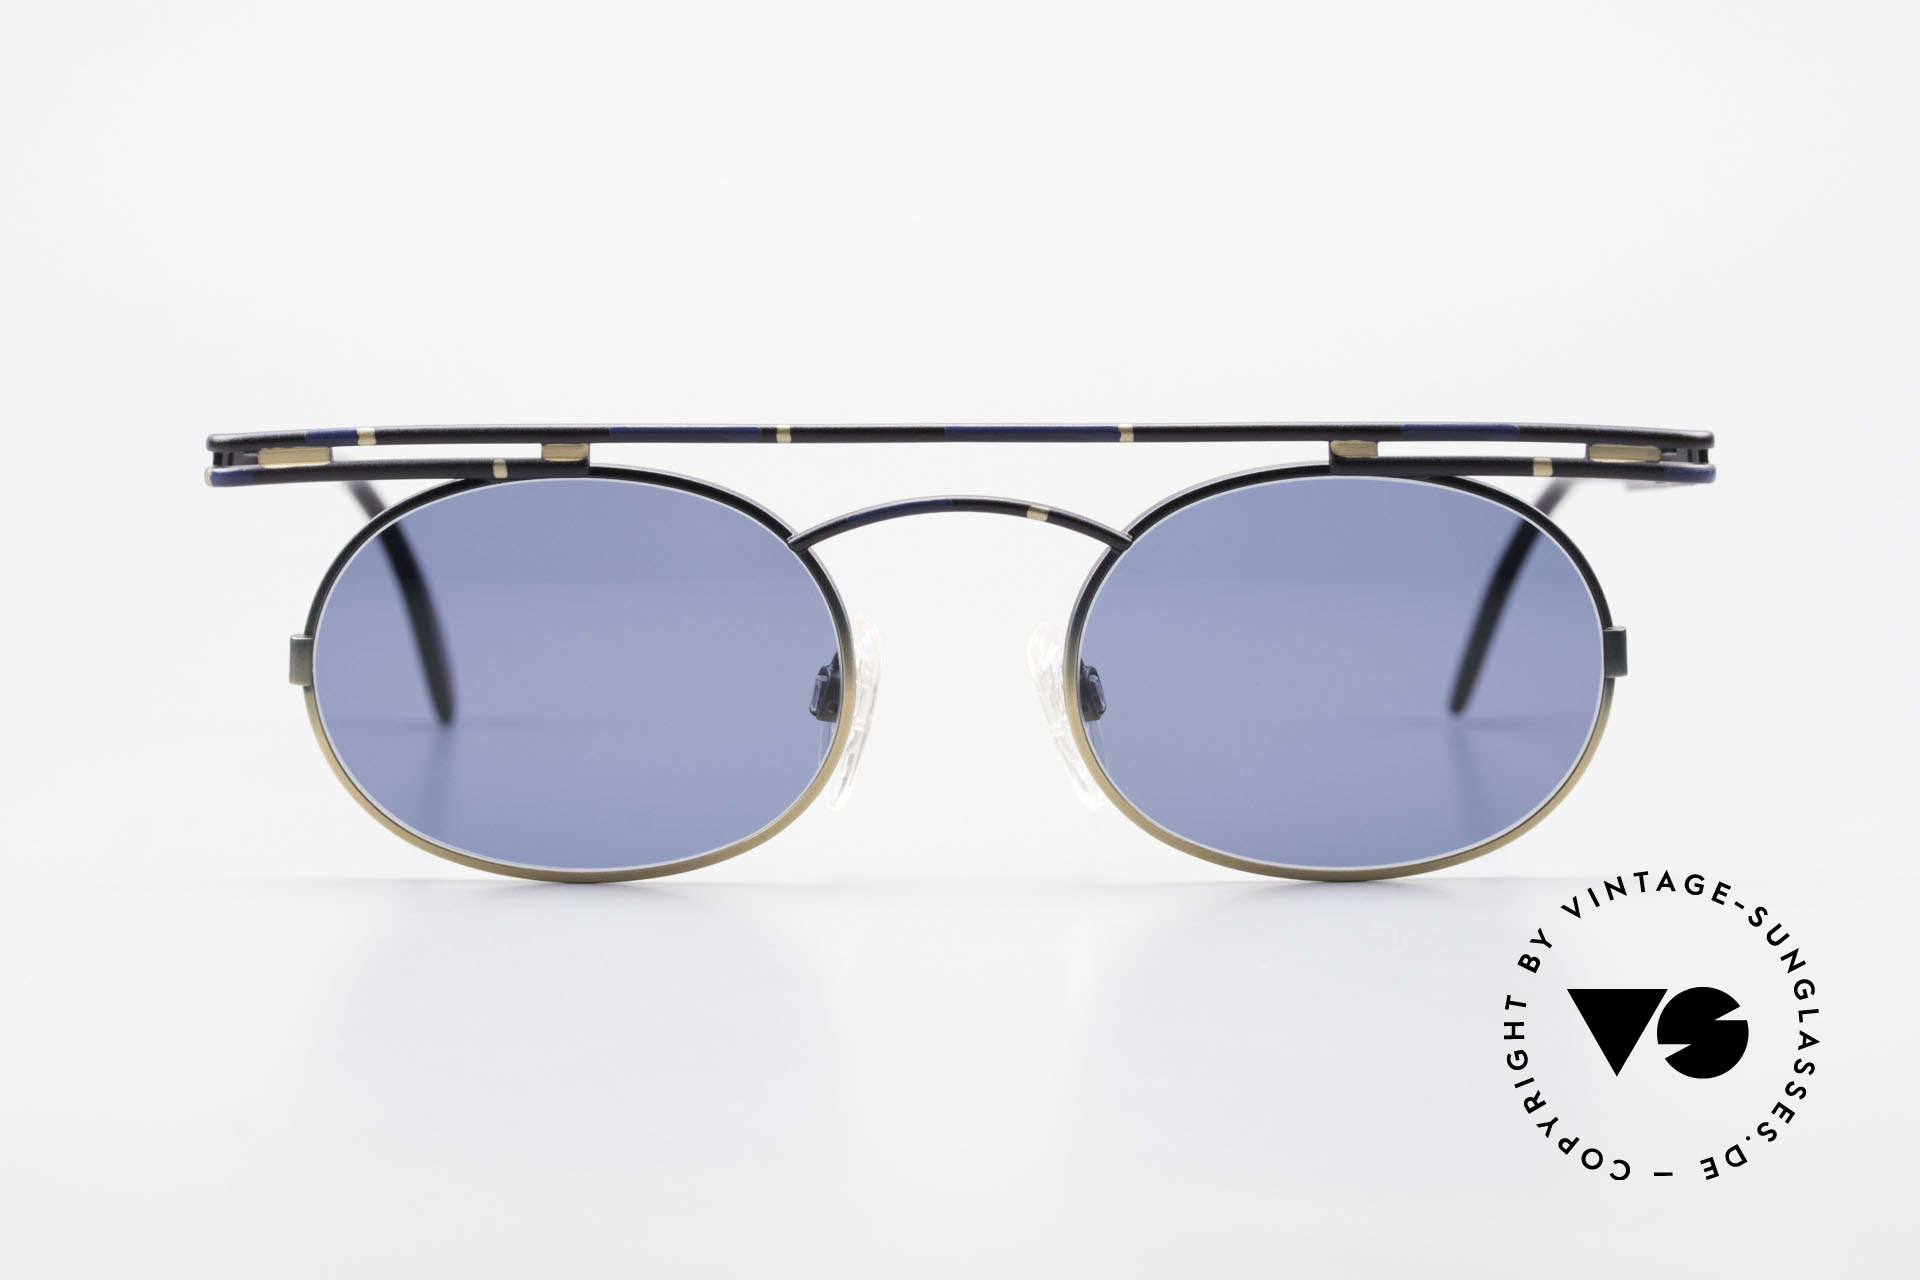 Cazal 761 Original Old Cazal Sunglasses, angular & round at the same time; a real eye-catcher, Made for Men and Women